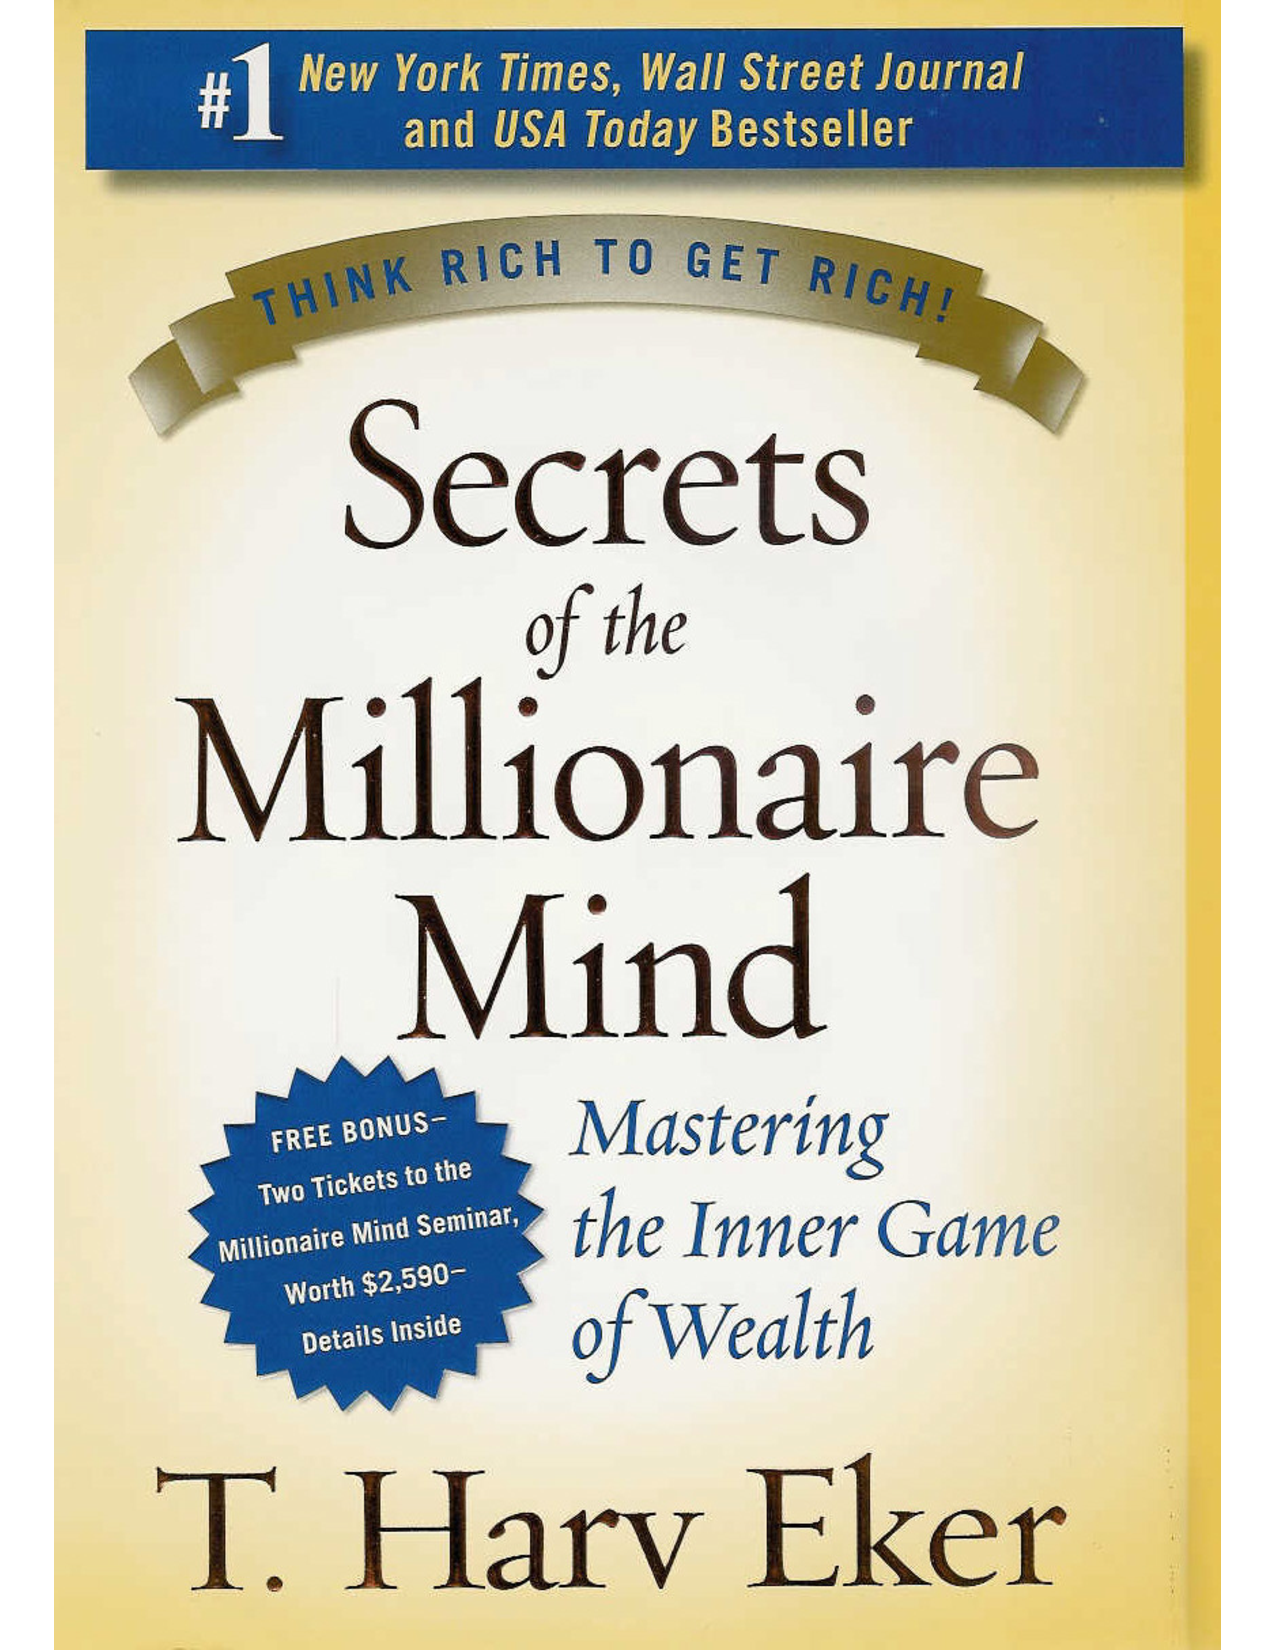 Download secrets of the millionaire mind by t harv eker epub pdf download secrets of the millionaire mind by t harv eker malvernweather Gallery